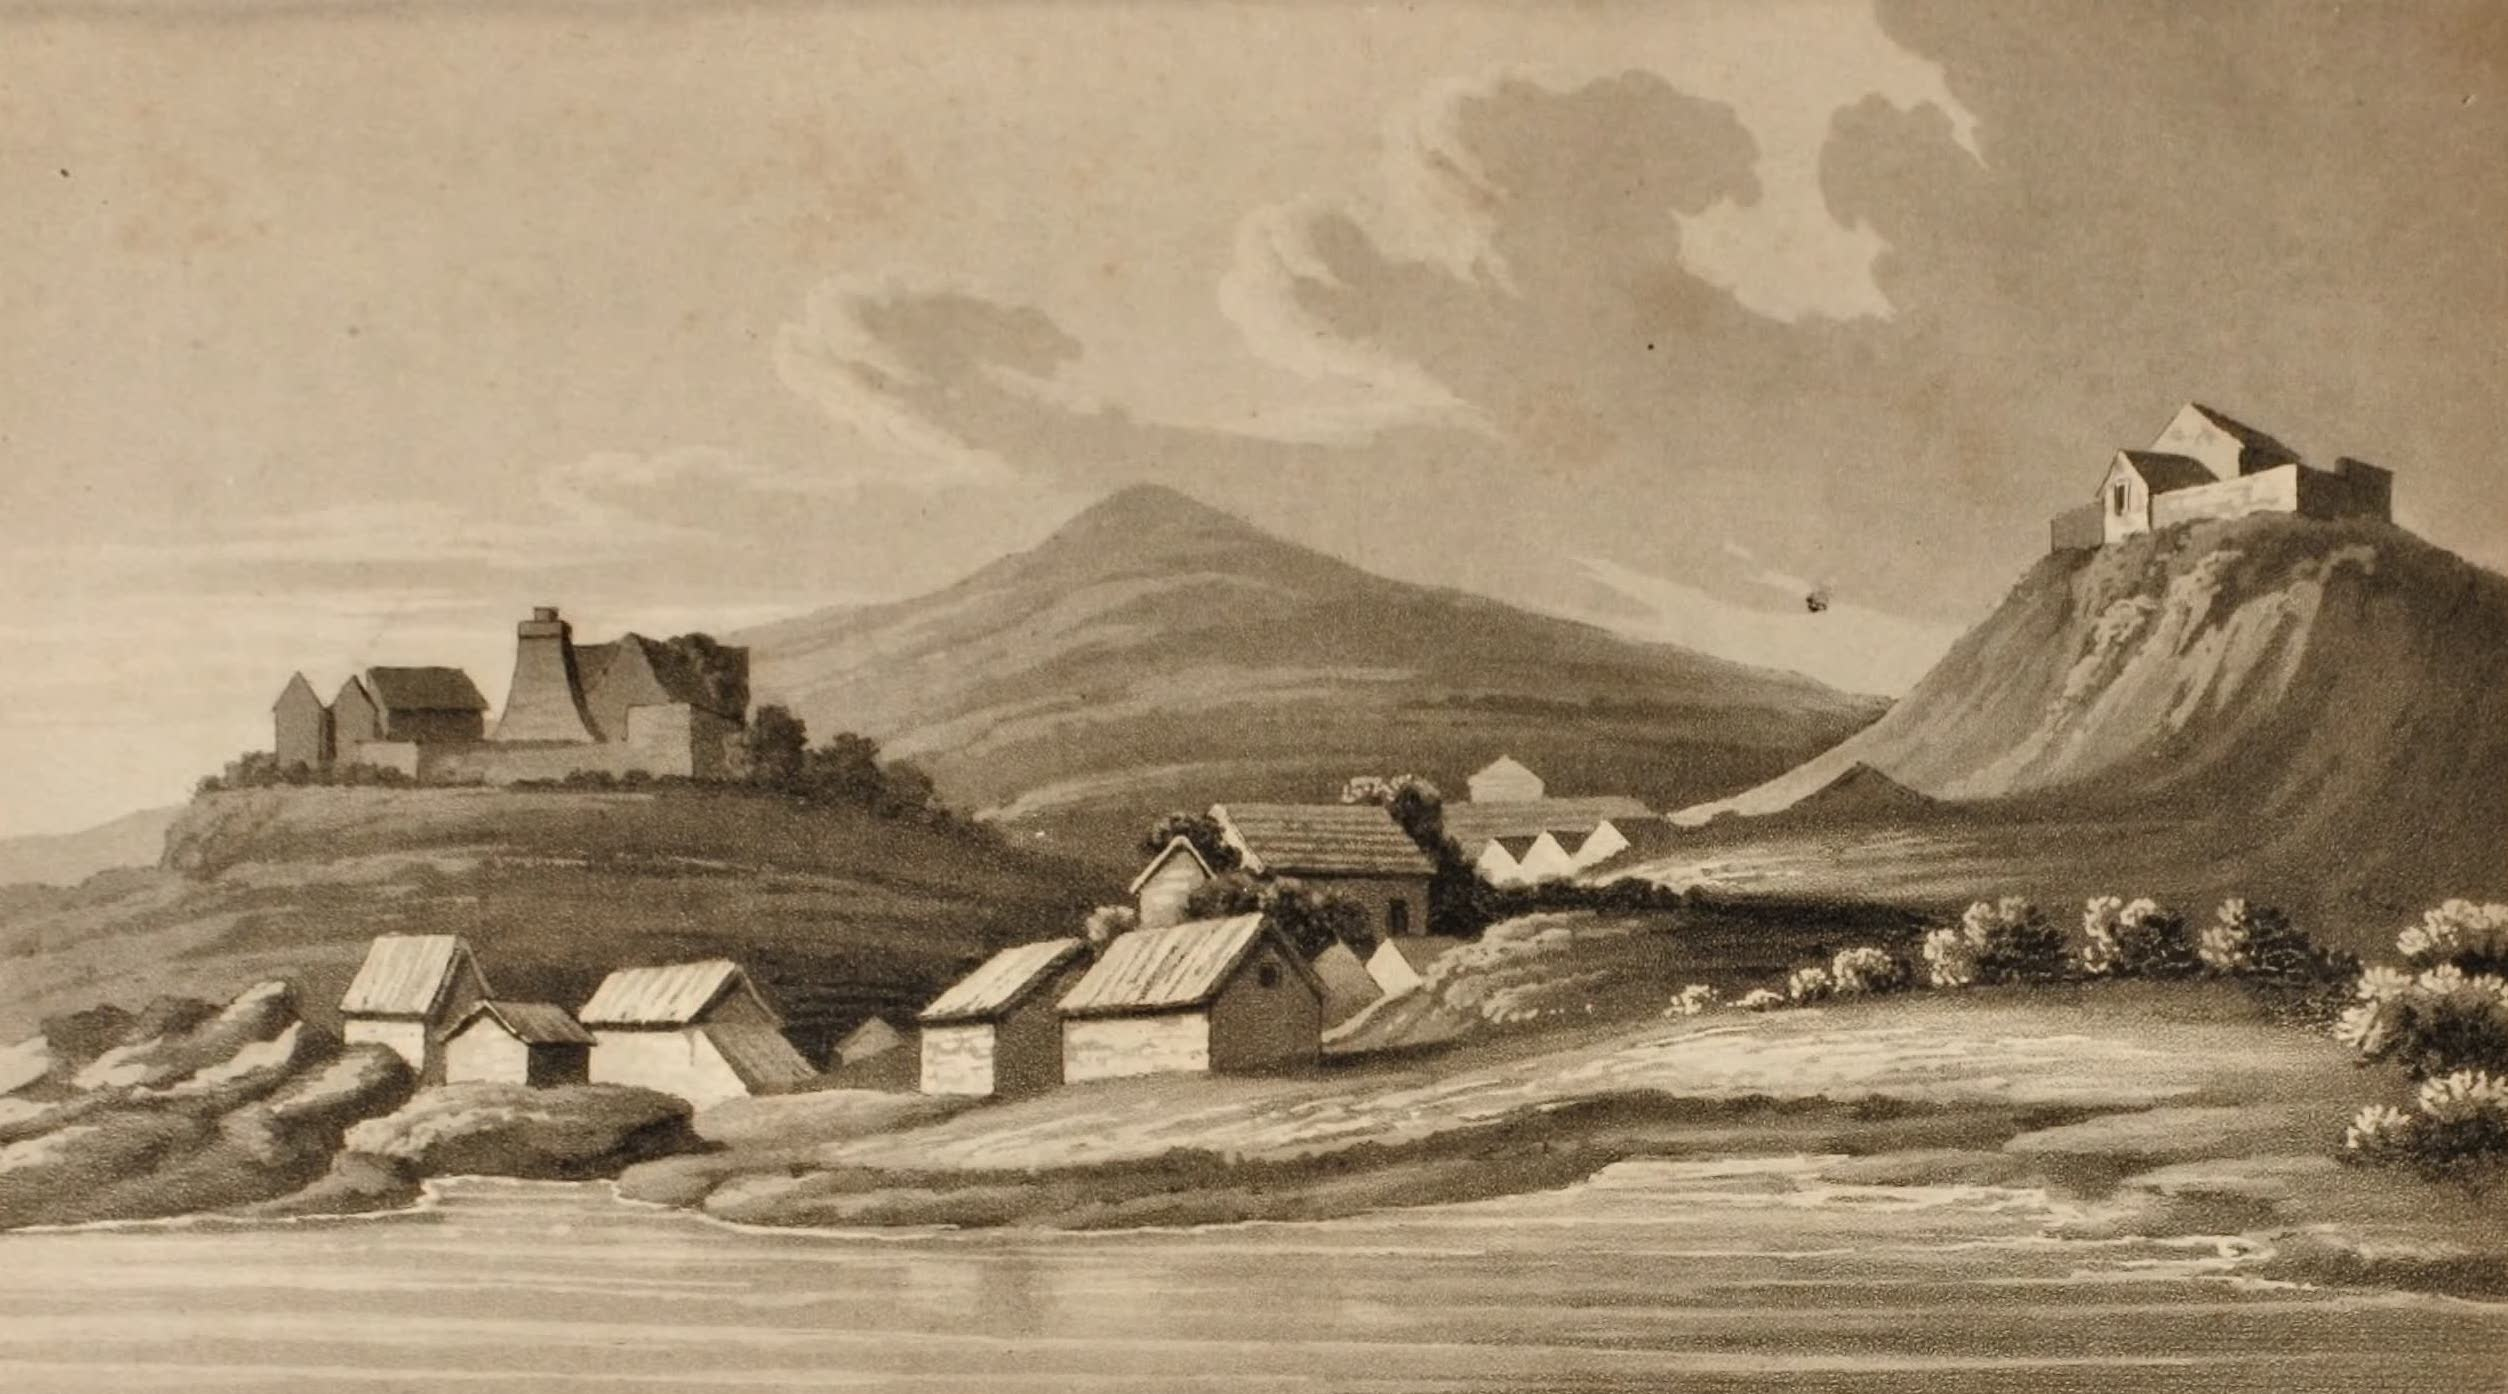 Journal of an Expedition 1400 miles up the Orinoco - Old Guyana (1822)